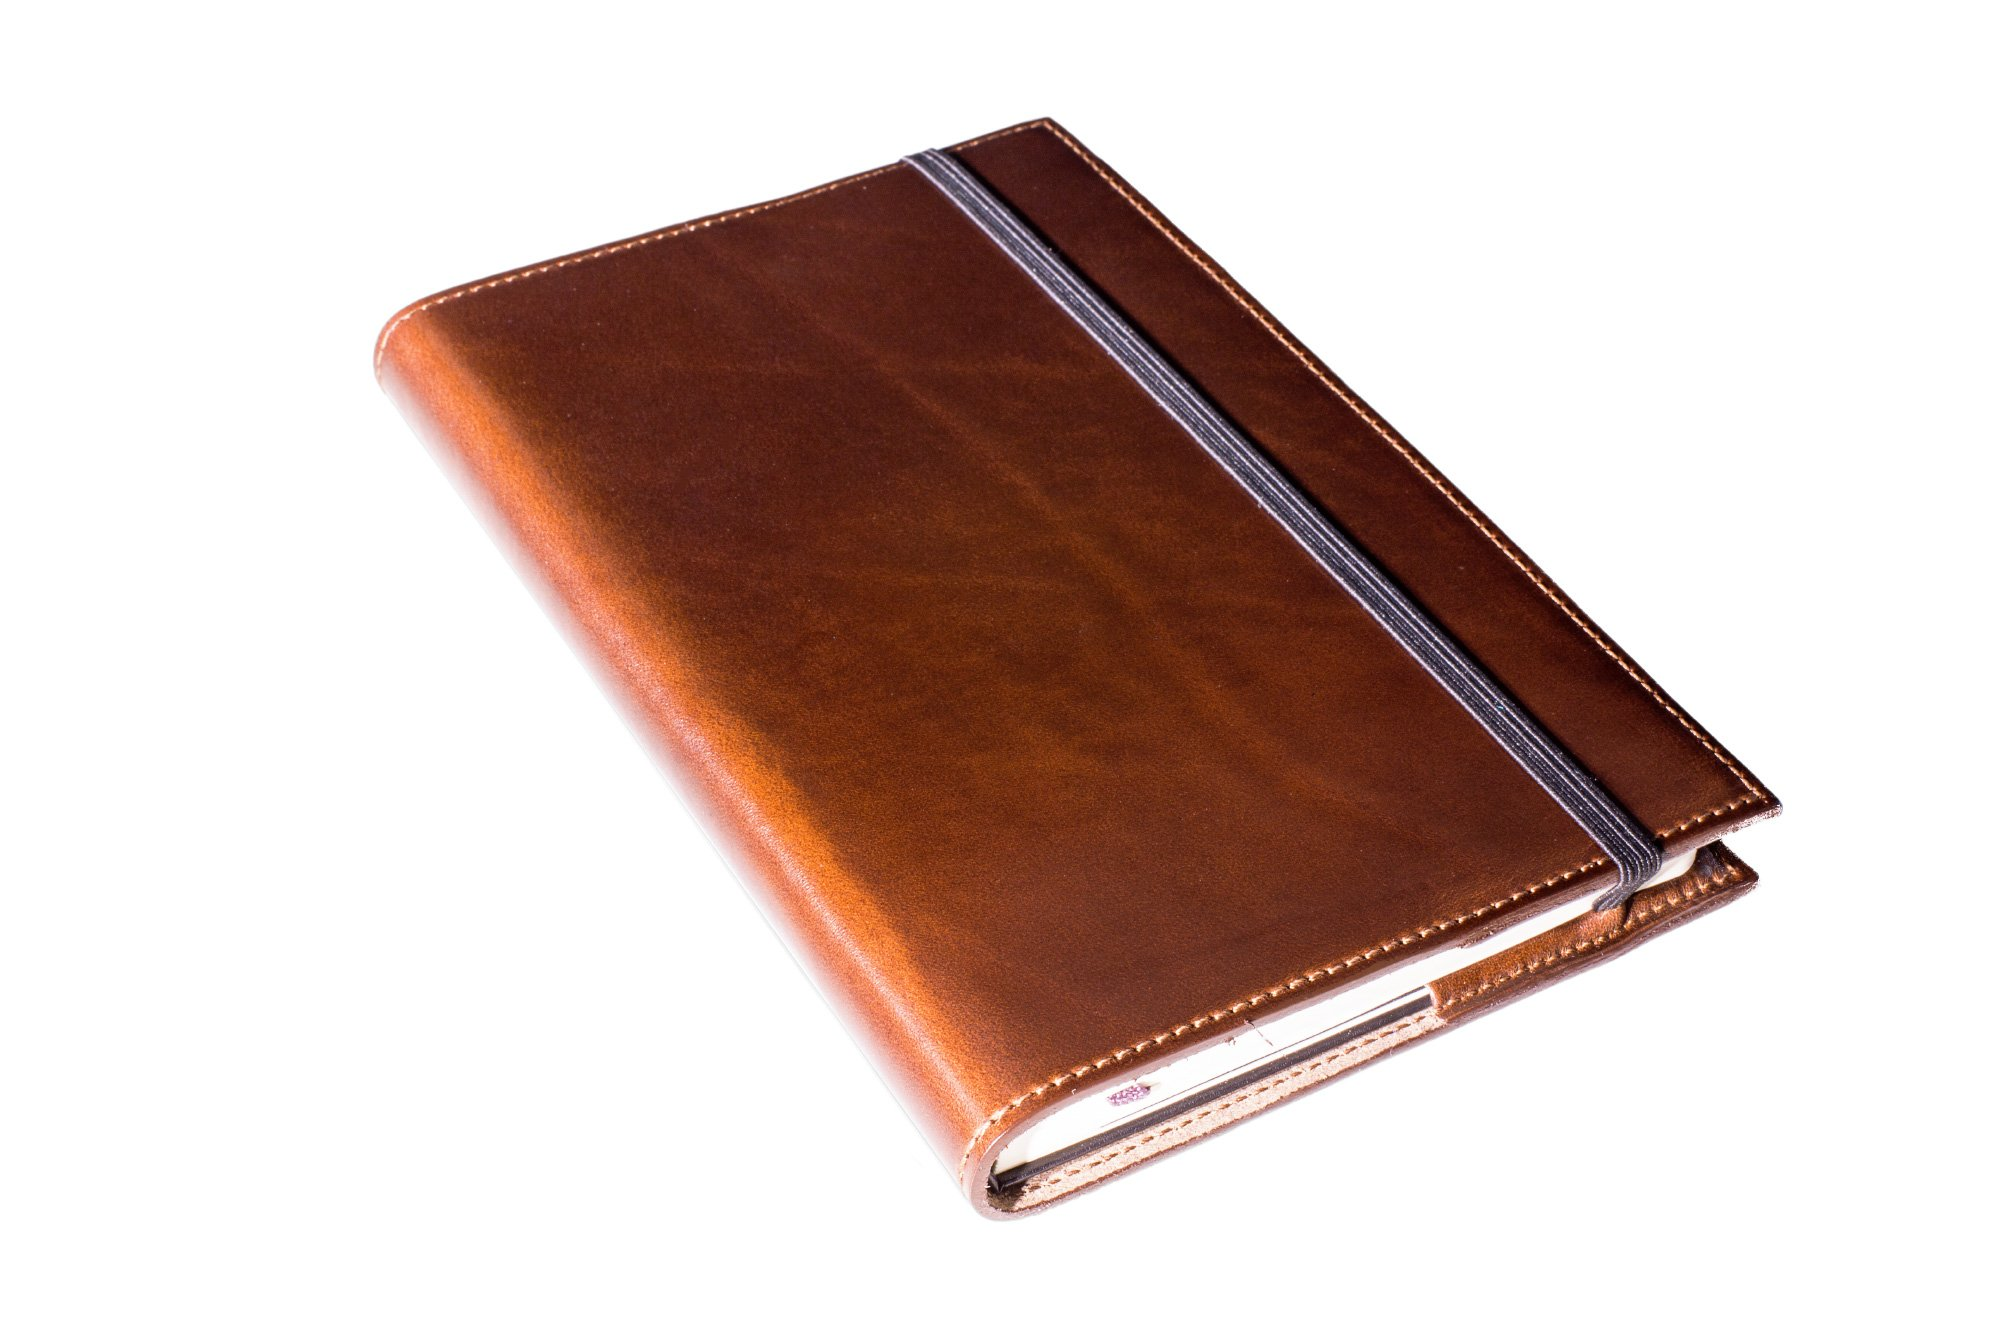 Vintage Leather Journal Moleskine Classic Large 5''x8.25'' with Lined Pages Refillable Writing Notebook in Full-Grain Horween Leather of Chestnut Color Handmade in USA Gift for Men, Women, Travelers